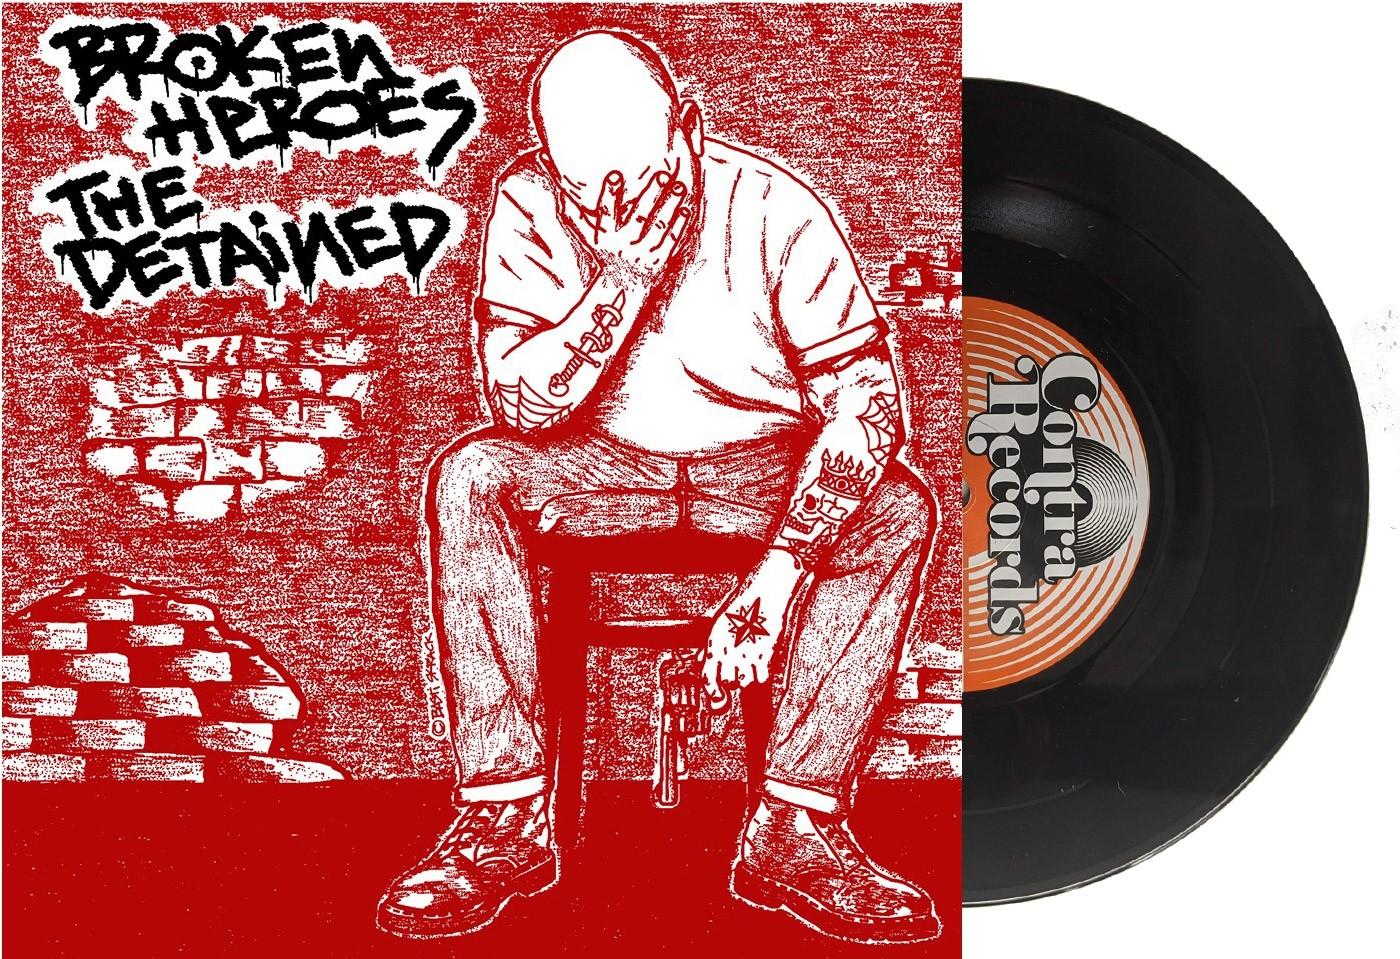 "V/A Broken Heroes / The Detained Split 7""EP lim.100 red cover/black vinyl"